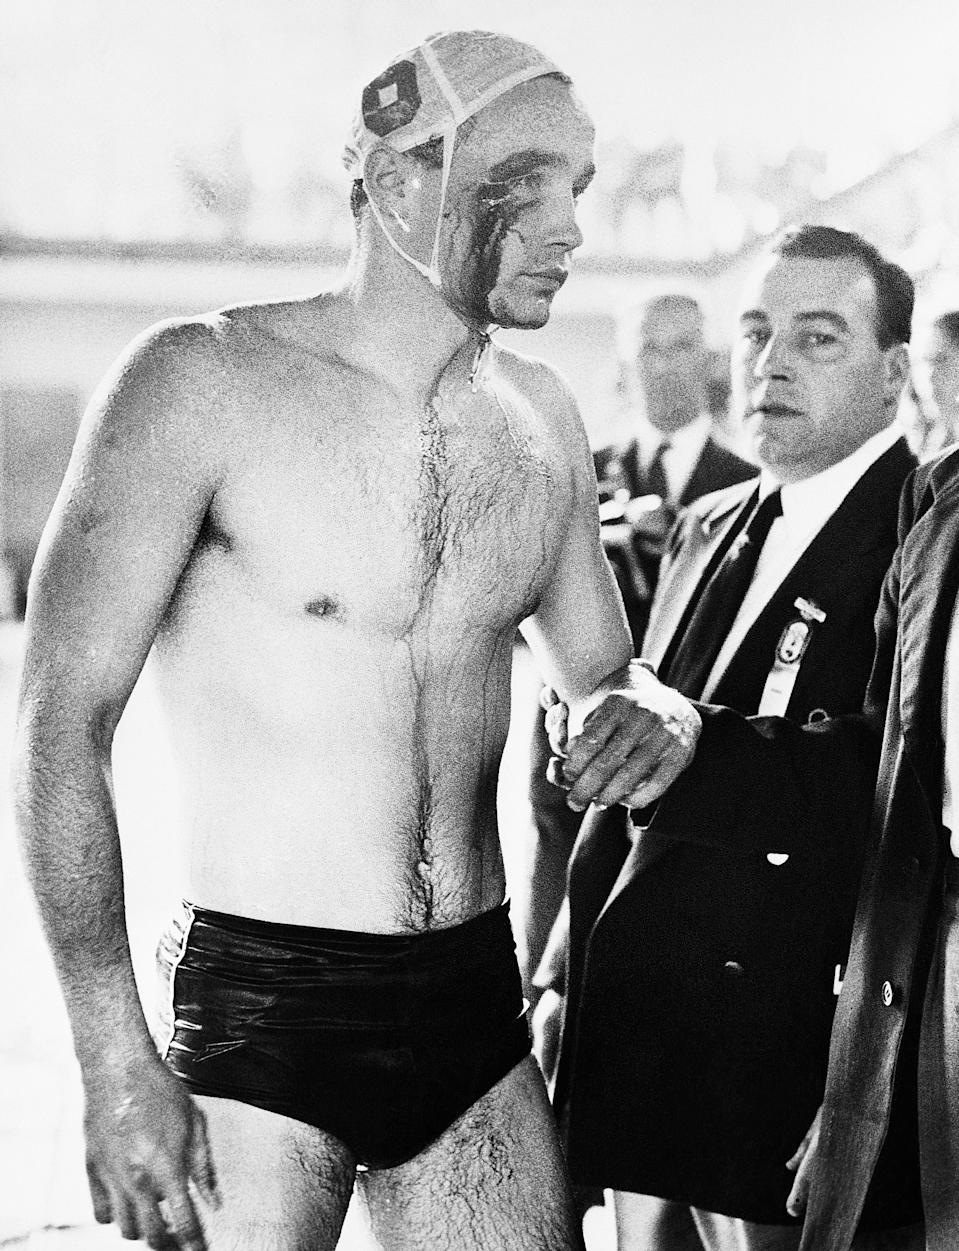 (Original Caption) 12/8/1956-Melbourne, Australia- 1956 OLYMPICS- PLAYER INJURED IN WATER POLO BRAWL. Blood streams from the cut eye of Ervin Zador- injured during a brawl with Russian water polo players during closing minutes of the Soviet-Hungary match. The match ended in chaos with the crowd booing the Russians. Throughout the match, which Hungary won 4-0, fists, elbows, knees and feet were used whenever the players came in contact.